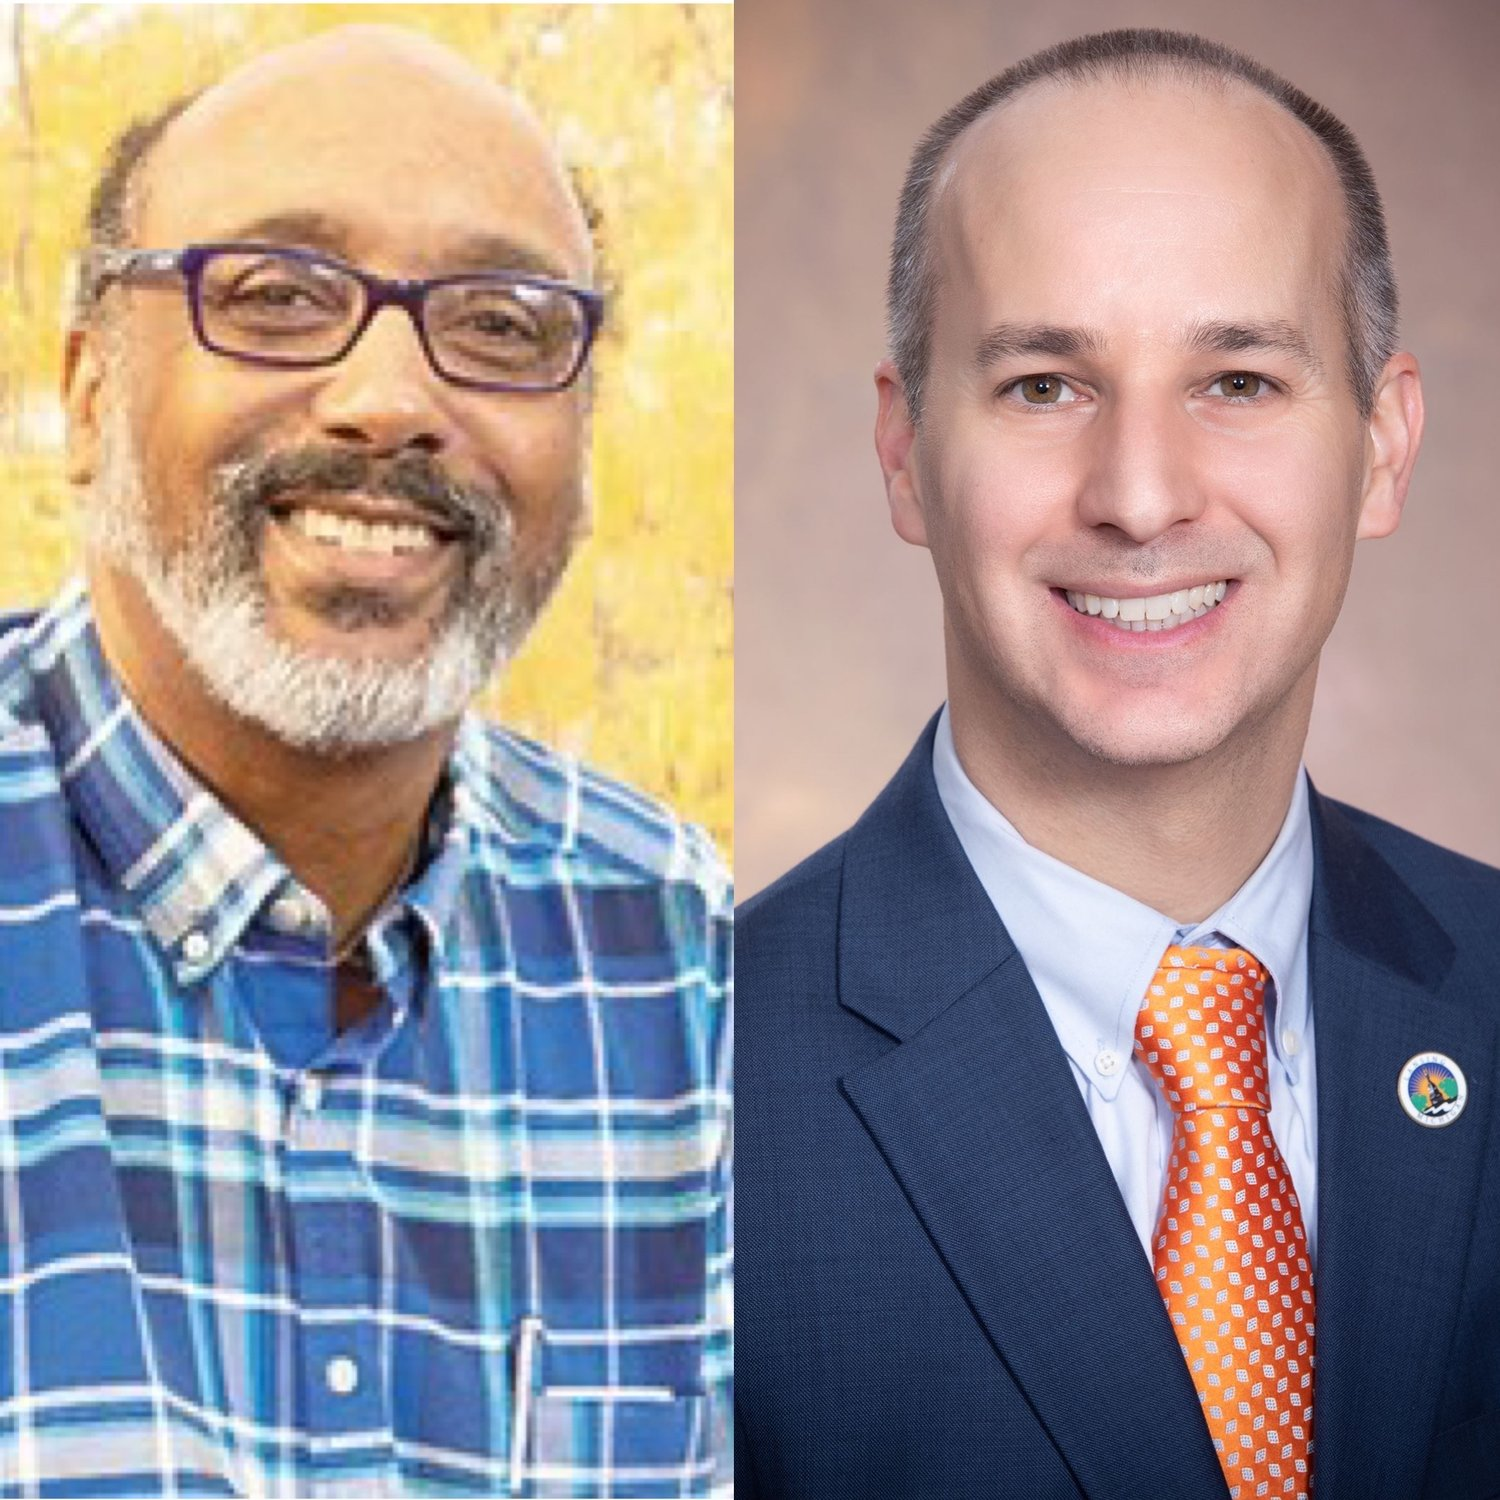 Randy Watkins (left) is the chairman of Lansing Mayor Andy Schor's (right) Inclusion and Diversity Advisory.